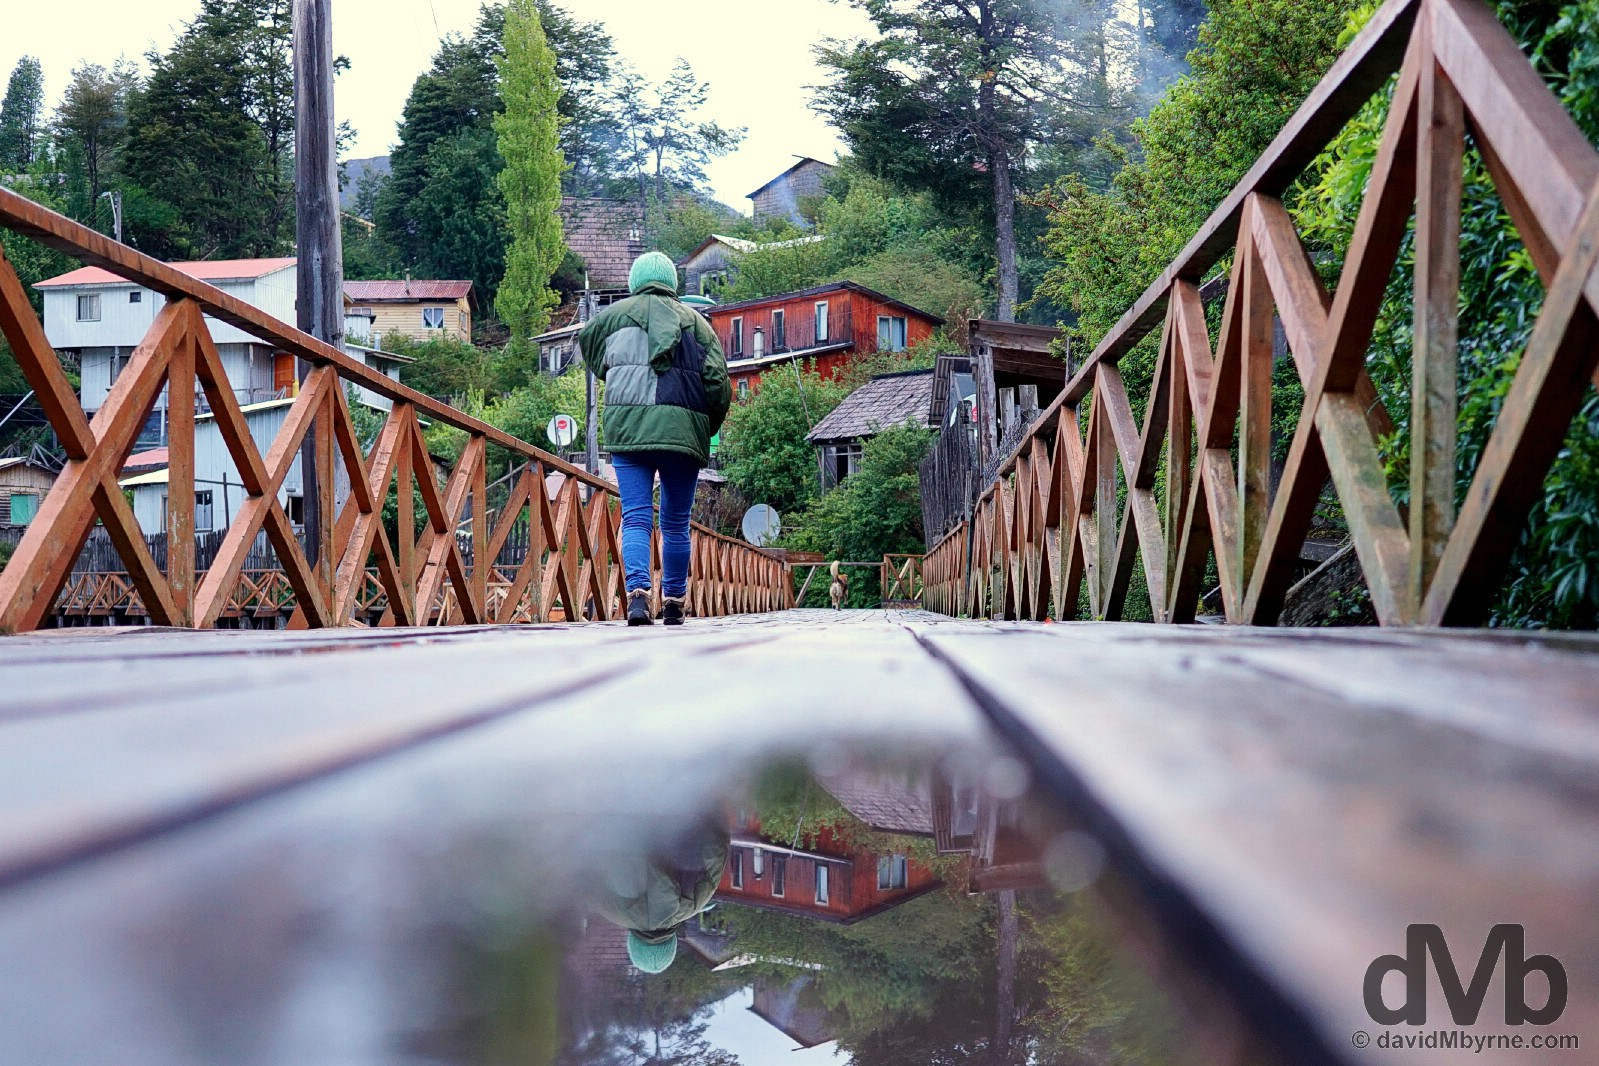 Boardwalk reflections in Caleta Tortel, Aysen, Chile. October 28, 2015.